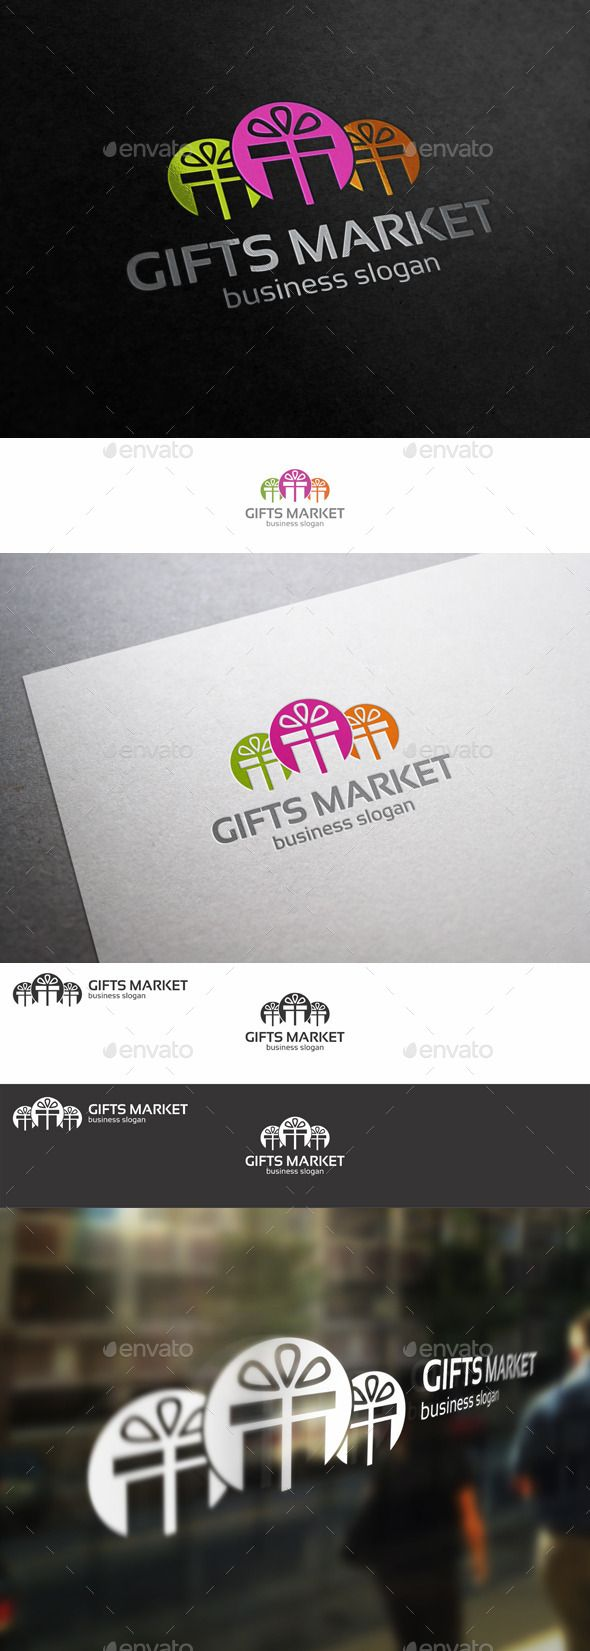 Gifts Shop Market Logo – Excellent logo in vector format for gifts shop logo, gift market logo, sell gifts, present shop, shops, e-shops, online shop, e-market, tv shop, shopping tv, online shopping, e-store, retail businesses, holiday gift, gifts service, souvenir business, shopping stores, tech support, and related companies. You can easily change the text. You can freely experiment with color. You can easily place this logo on your business card and printing – it's ready to print.